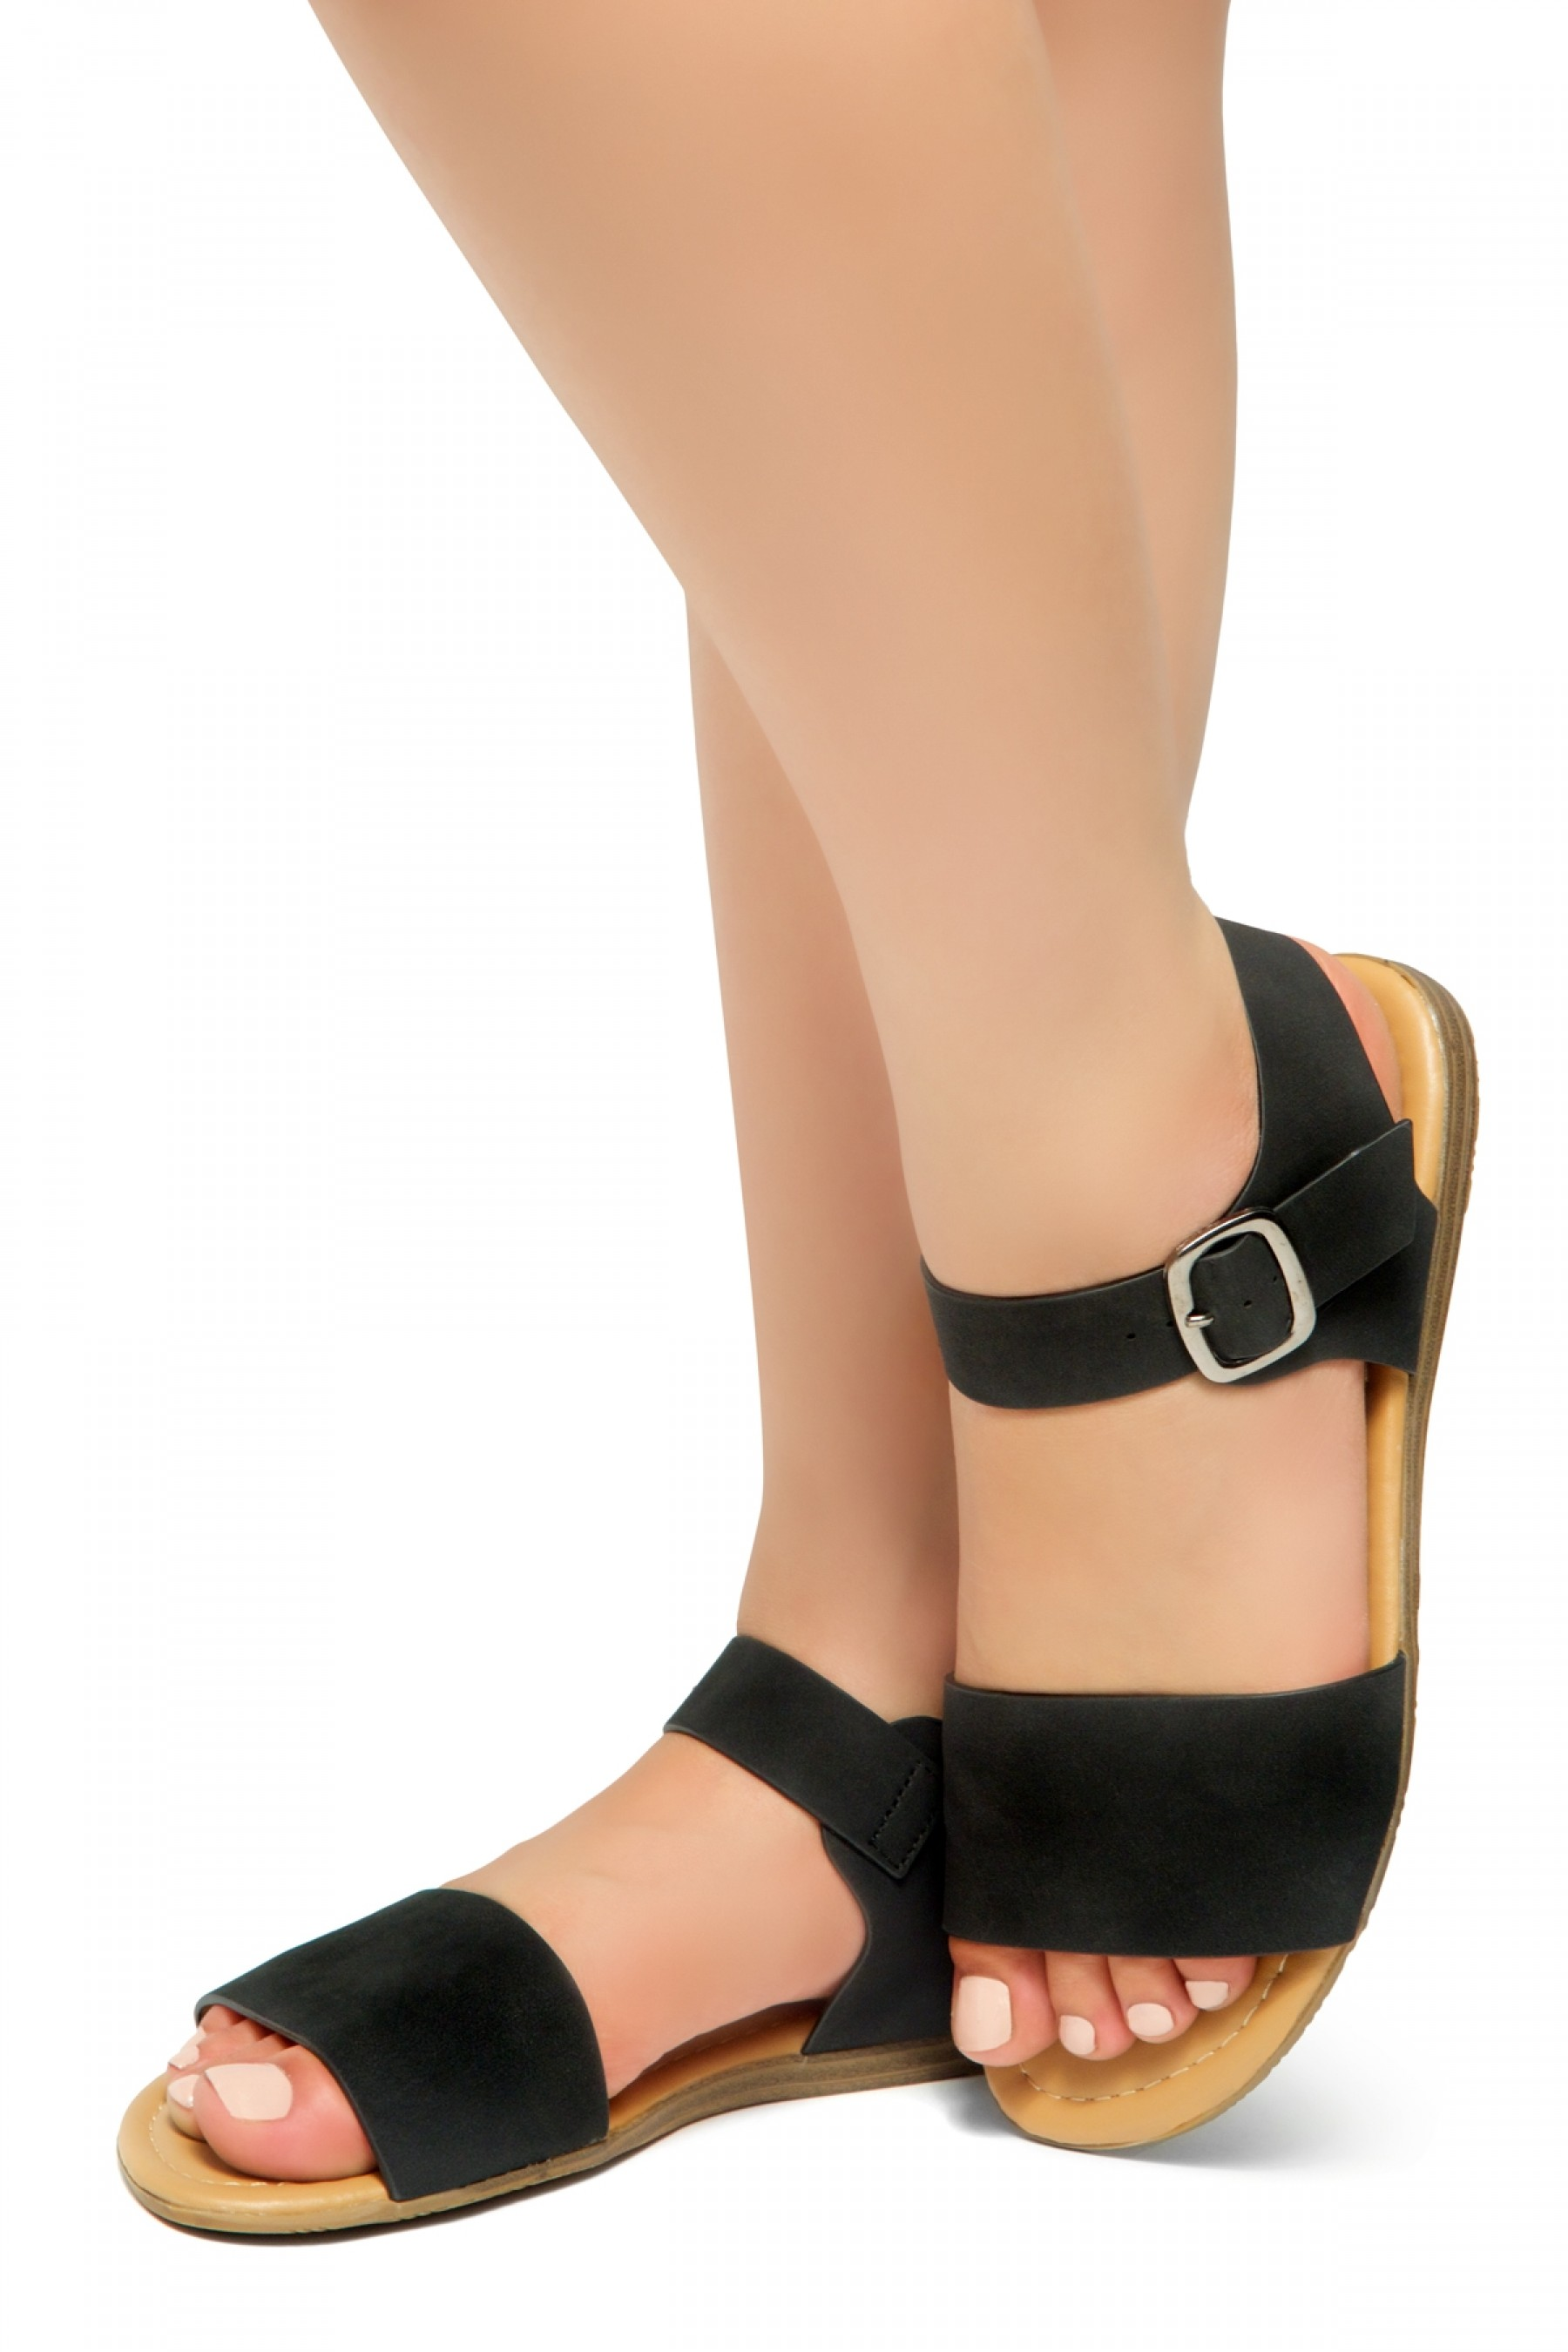 HerStyle Women's Redeem Wide Vamp Strap Wedge Sandals with Square Buckle (Black)